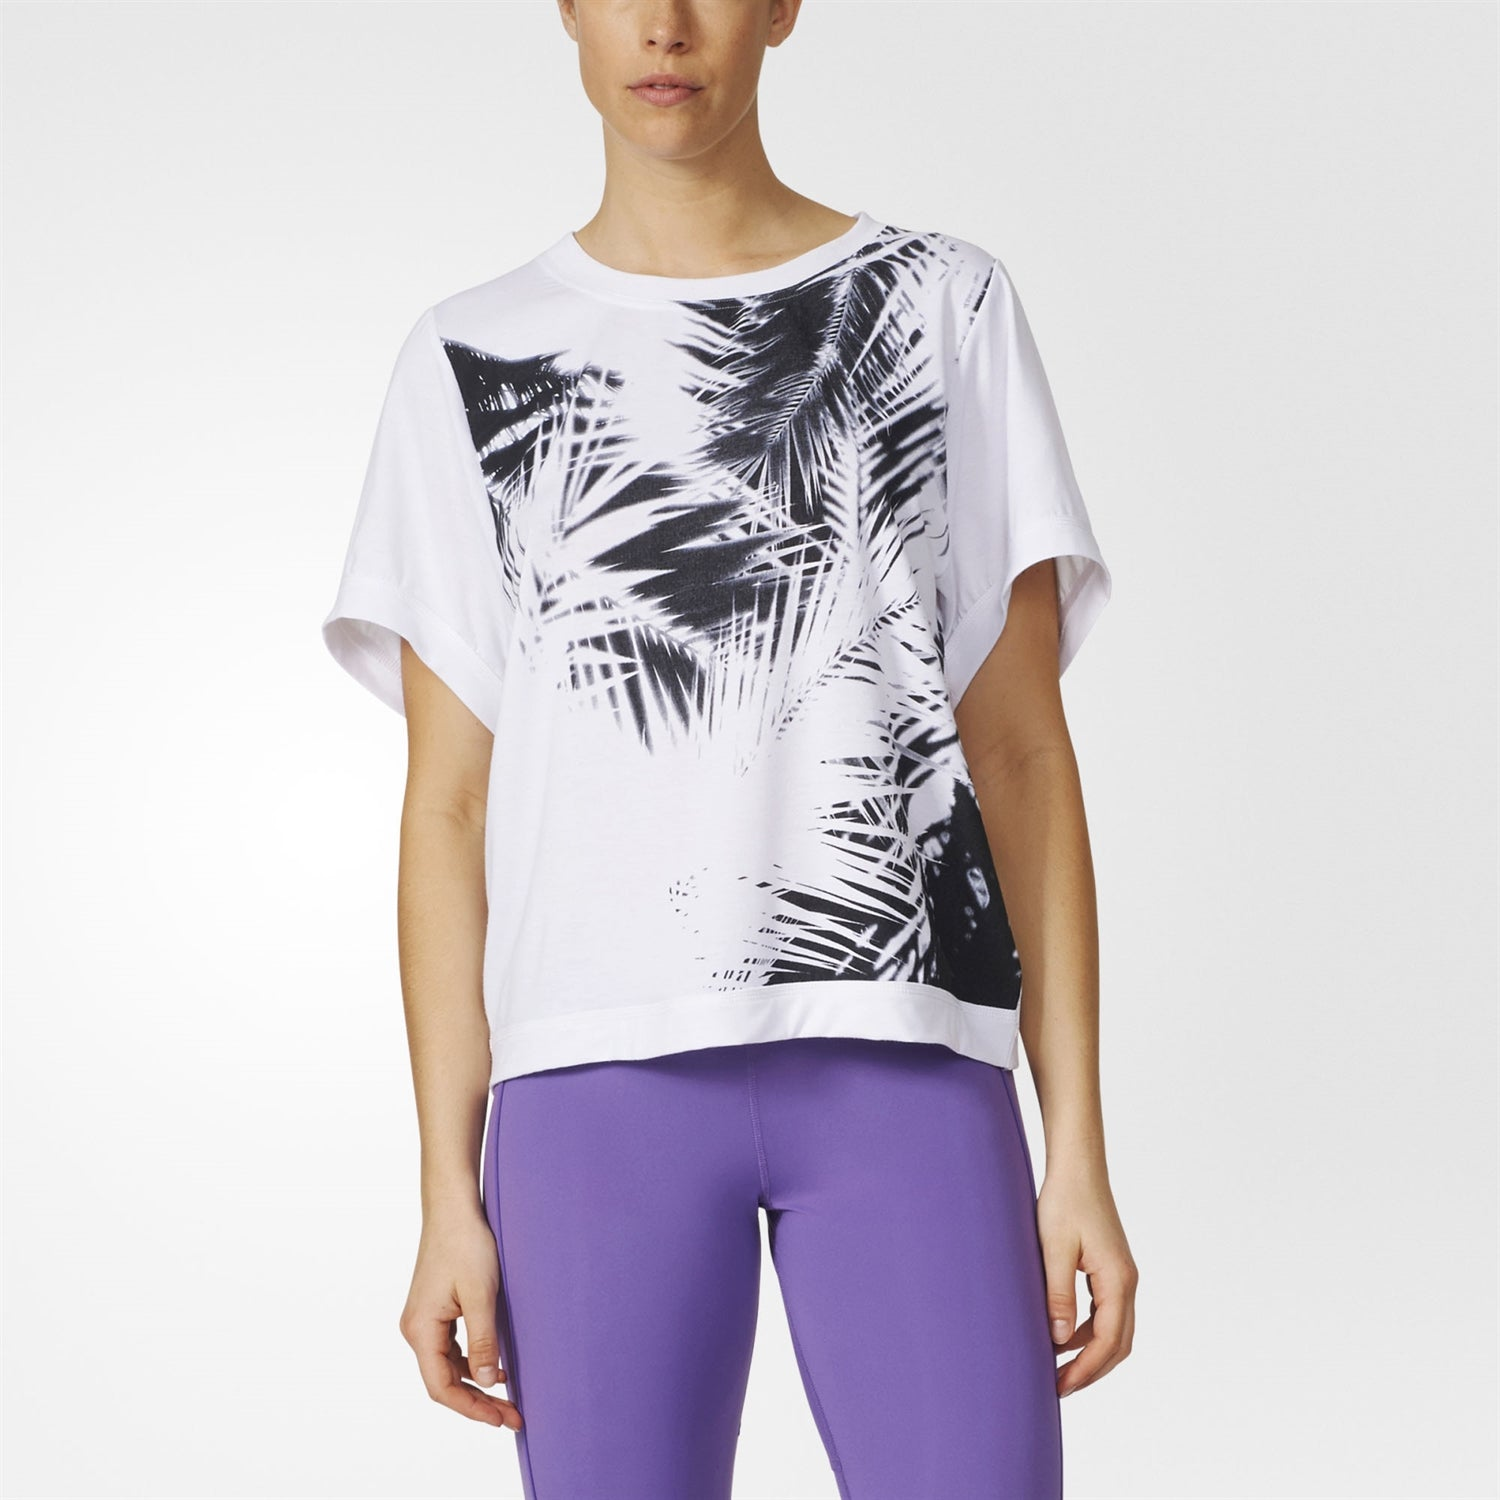 Adidas By Stella Mccartney 100% organic cotton 'Essentials Palm' T-shirt AX7429